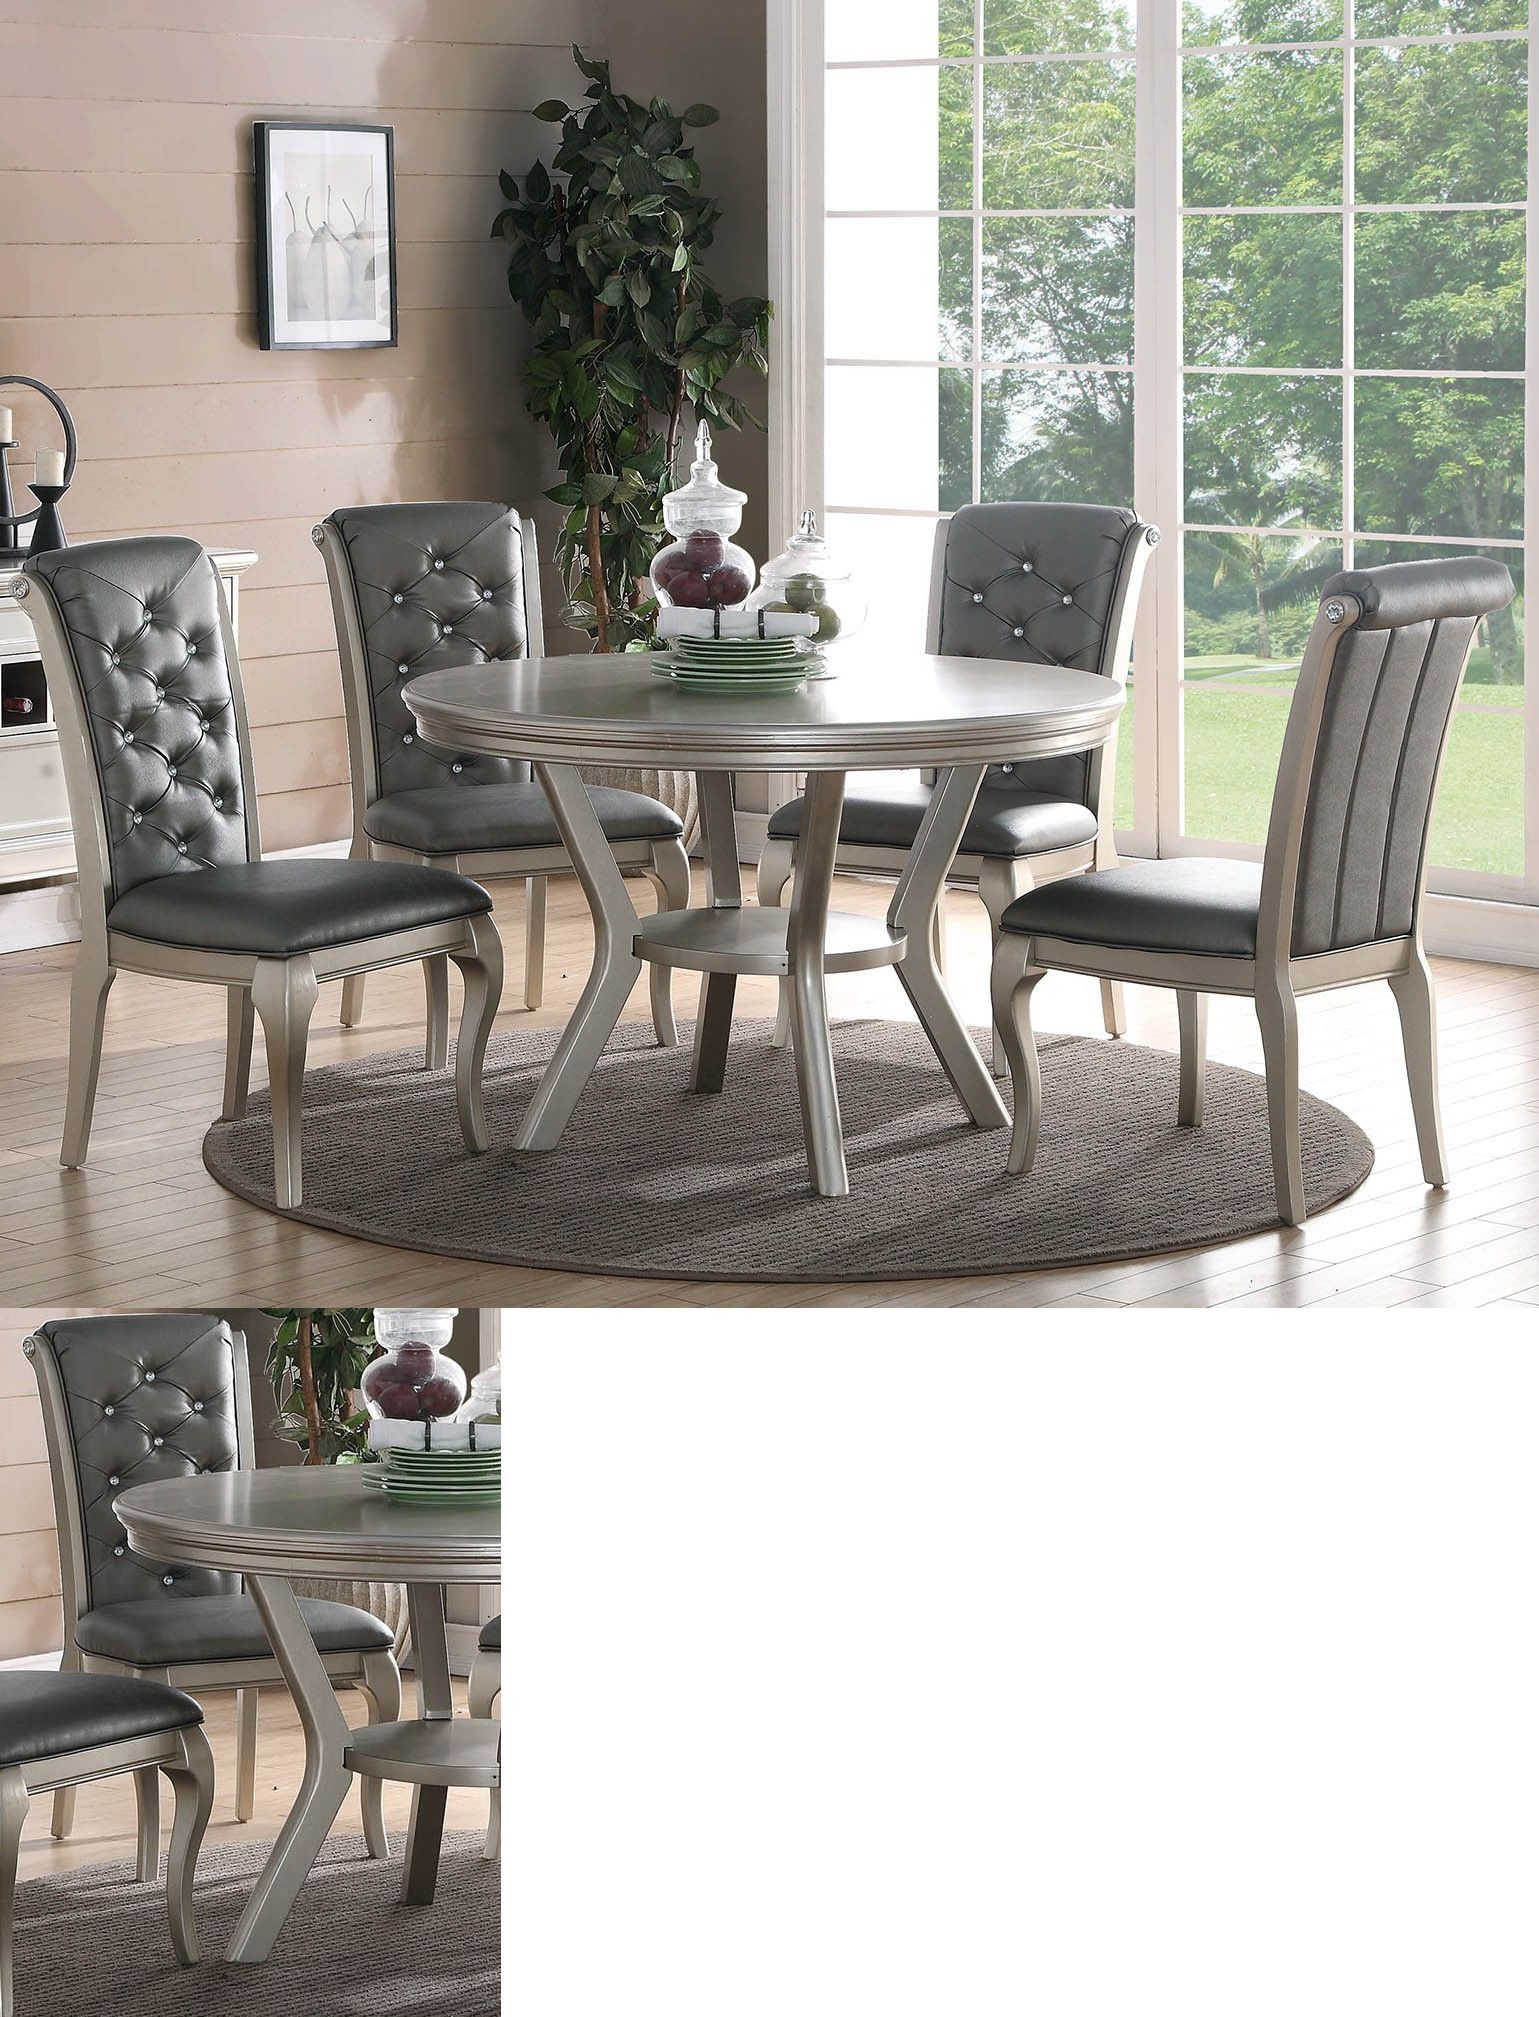 Dining Sets 107578 Zeyna 5Pc Round Platinum Silver Finish Wood Glamorous Dining Room Table And Chairs Ebay Design Inspiration